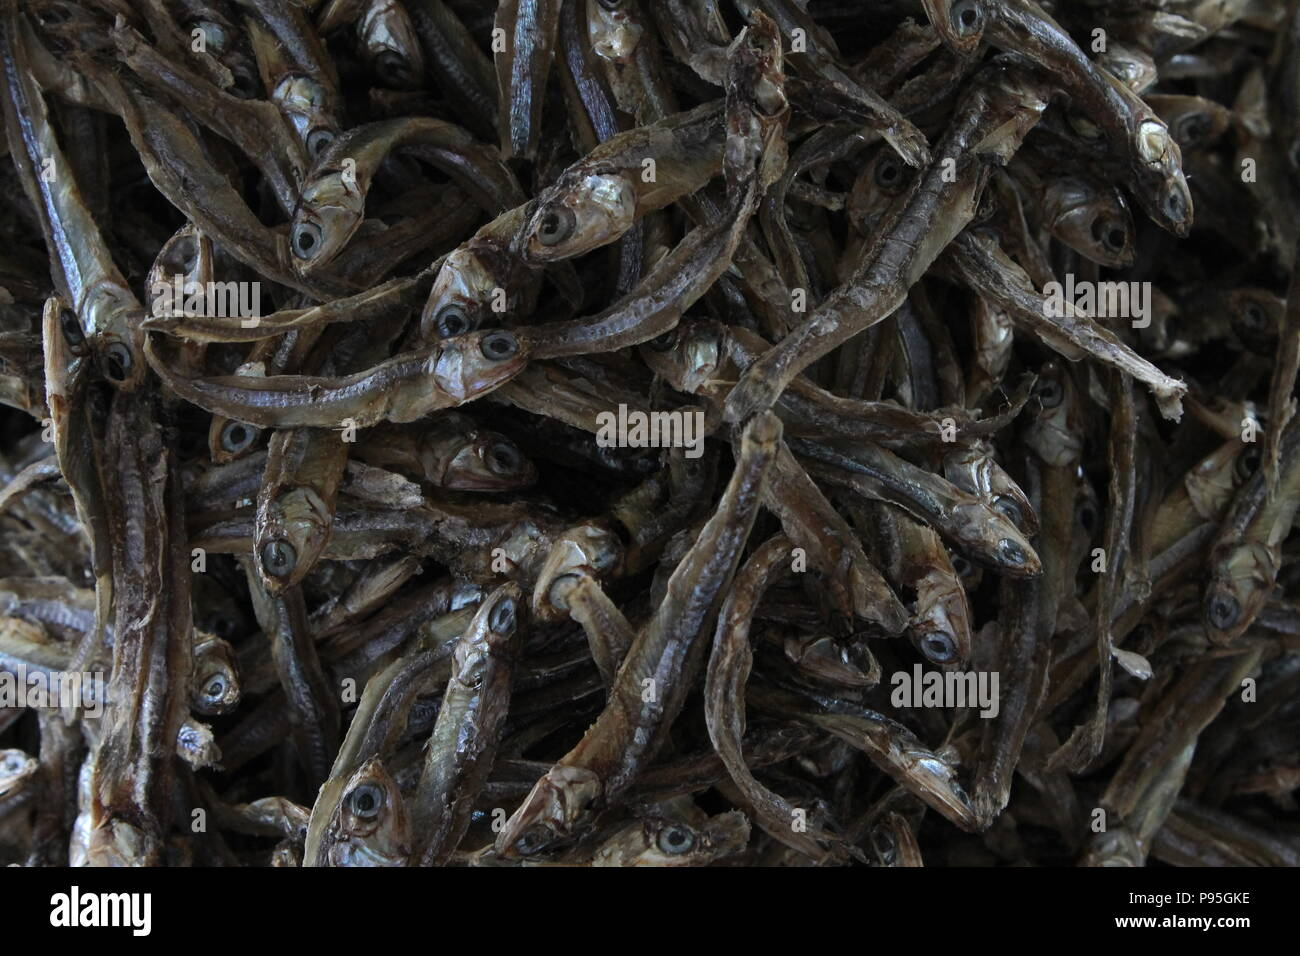 Dried fish in a market in Labuan Bajo, Flores, Indonesia - Stock Image